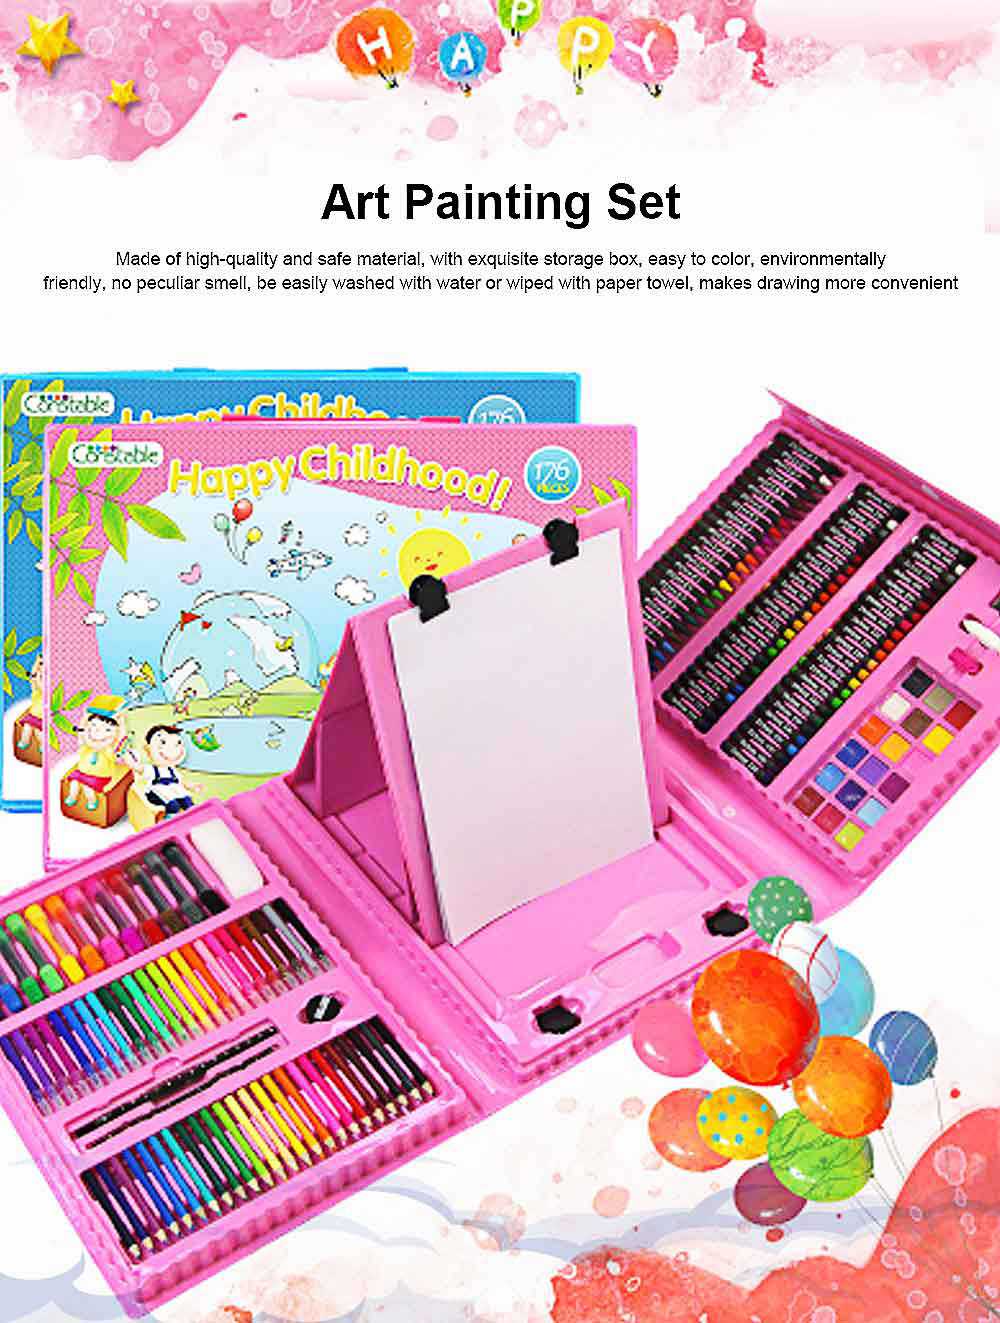 Children's Drawing Stationery, 176 PCS Children Art Painting Set 0